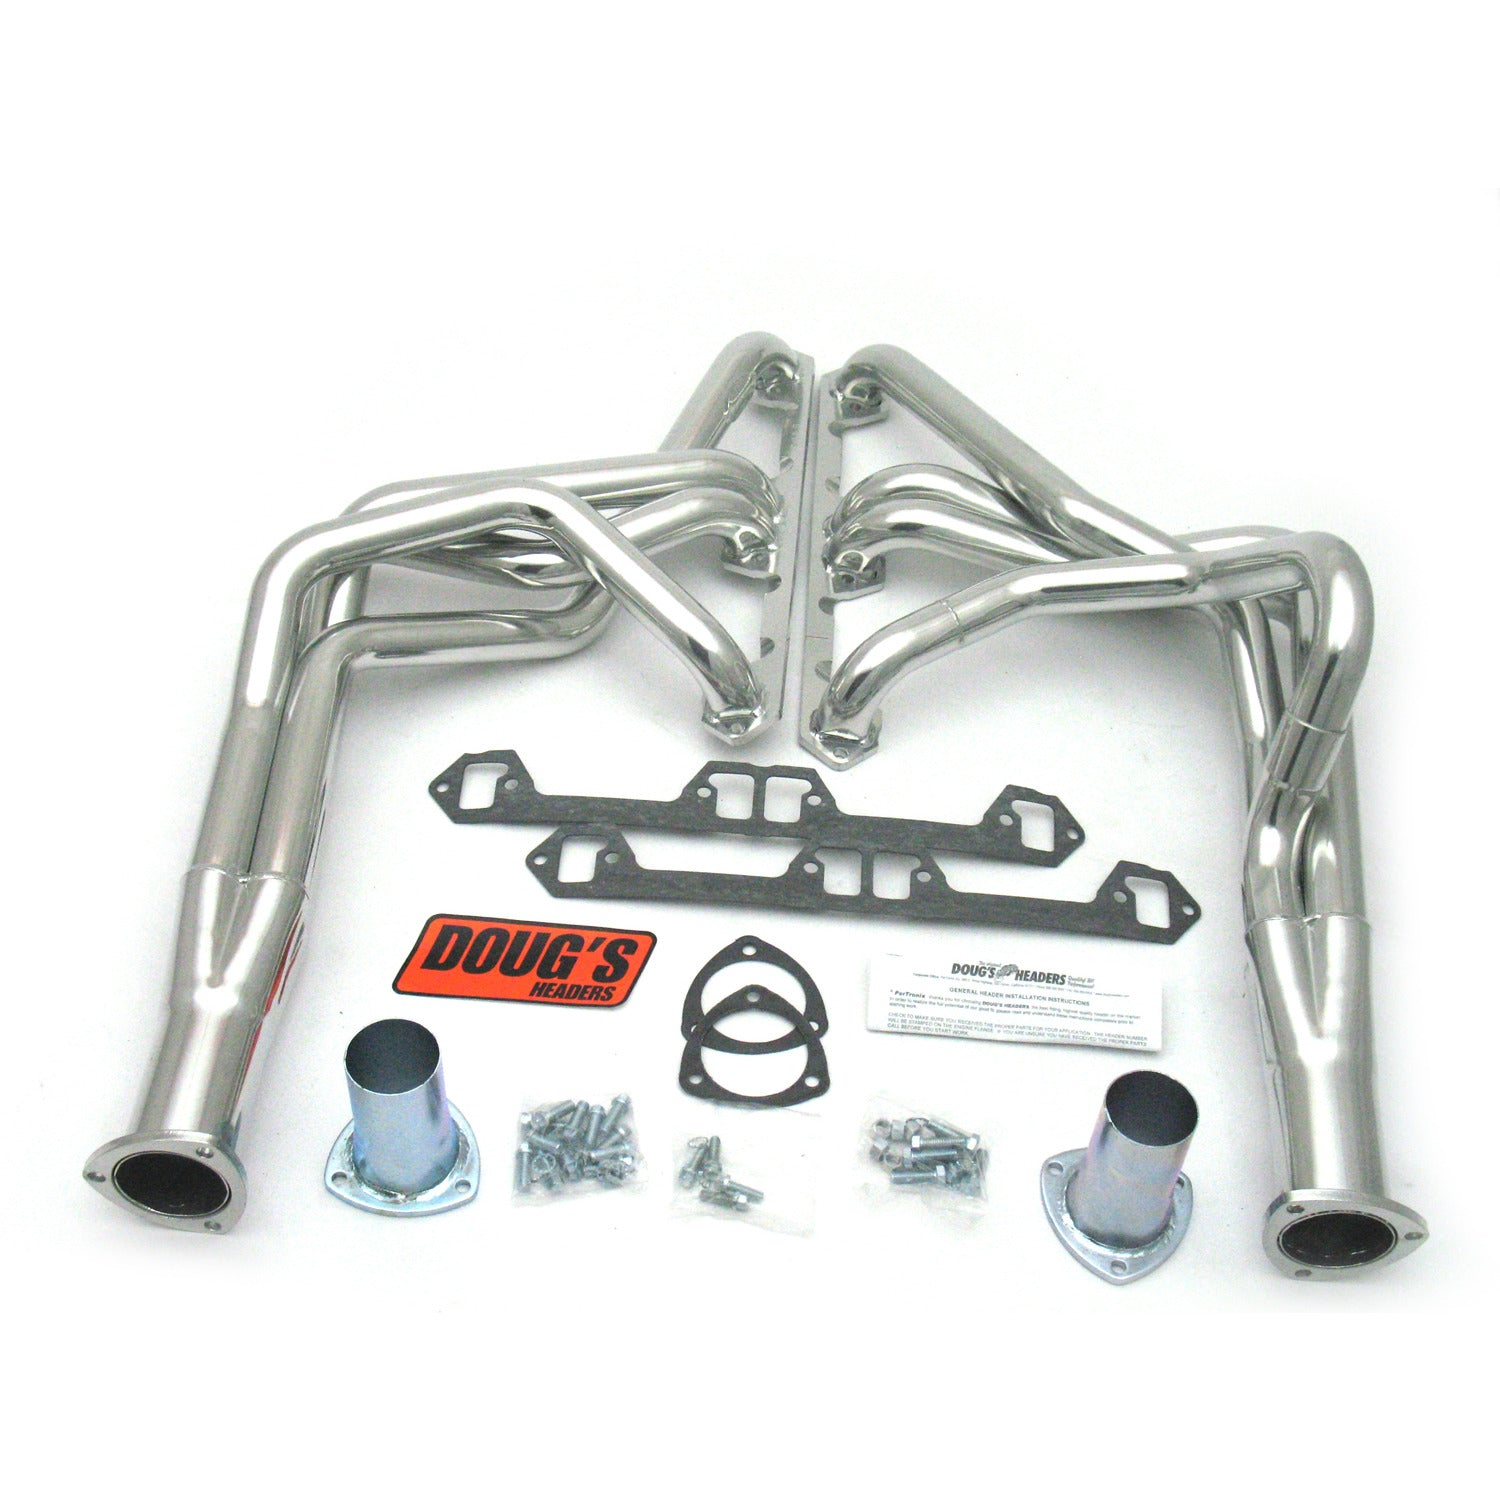 "Doug's Headers D103 1 3/4"" 4-Tube Full Length Header AMC Javelin V8 68-79 Metallic Ceramic Coating"